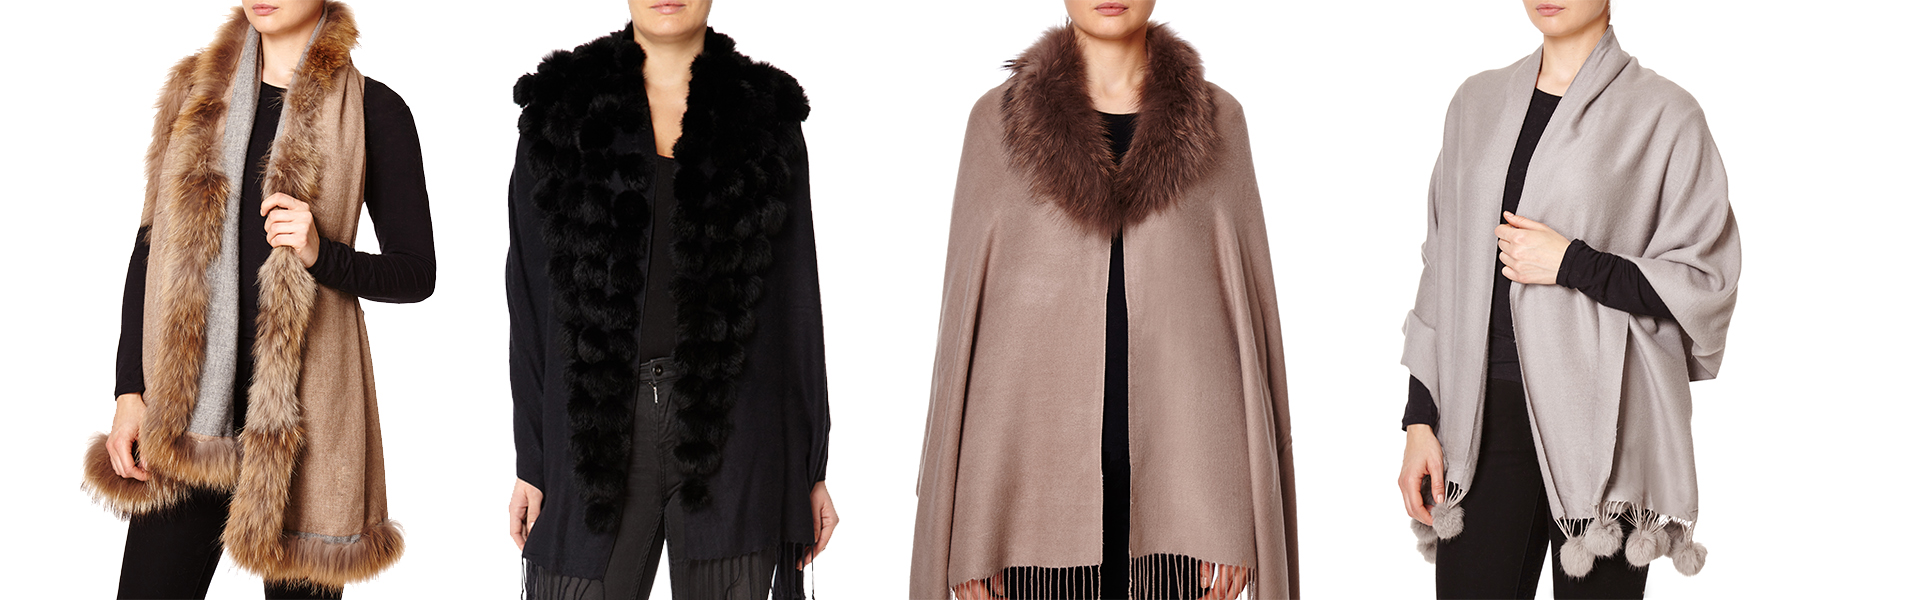 Cashmere & Fox Fur Wraps